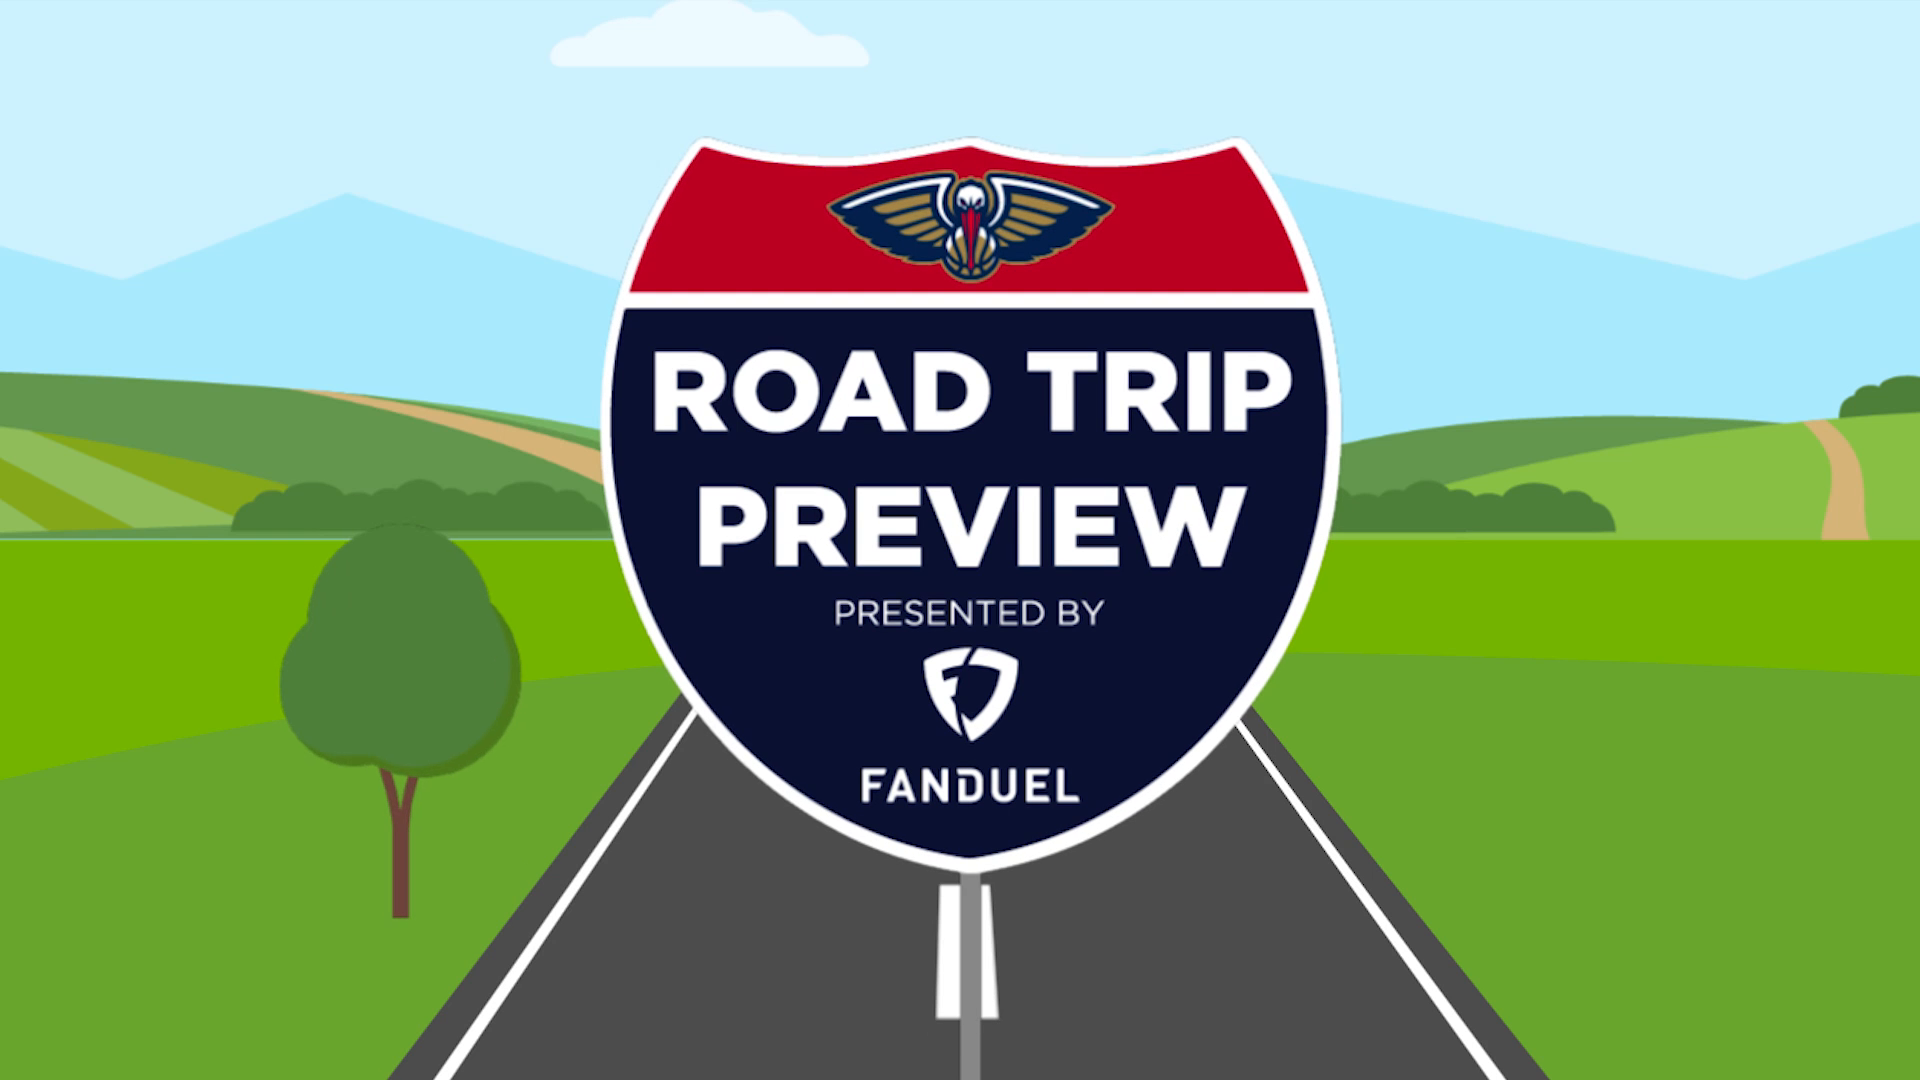 Pelicans Road Trip Preview presented by FanDuel | Golden State